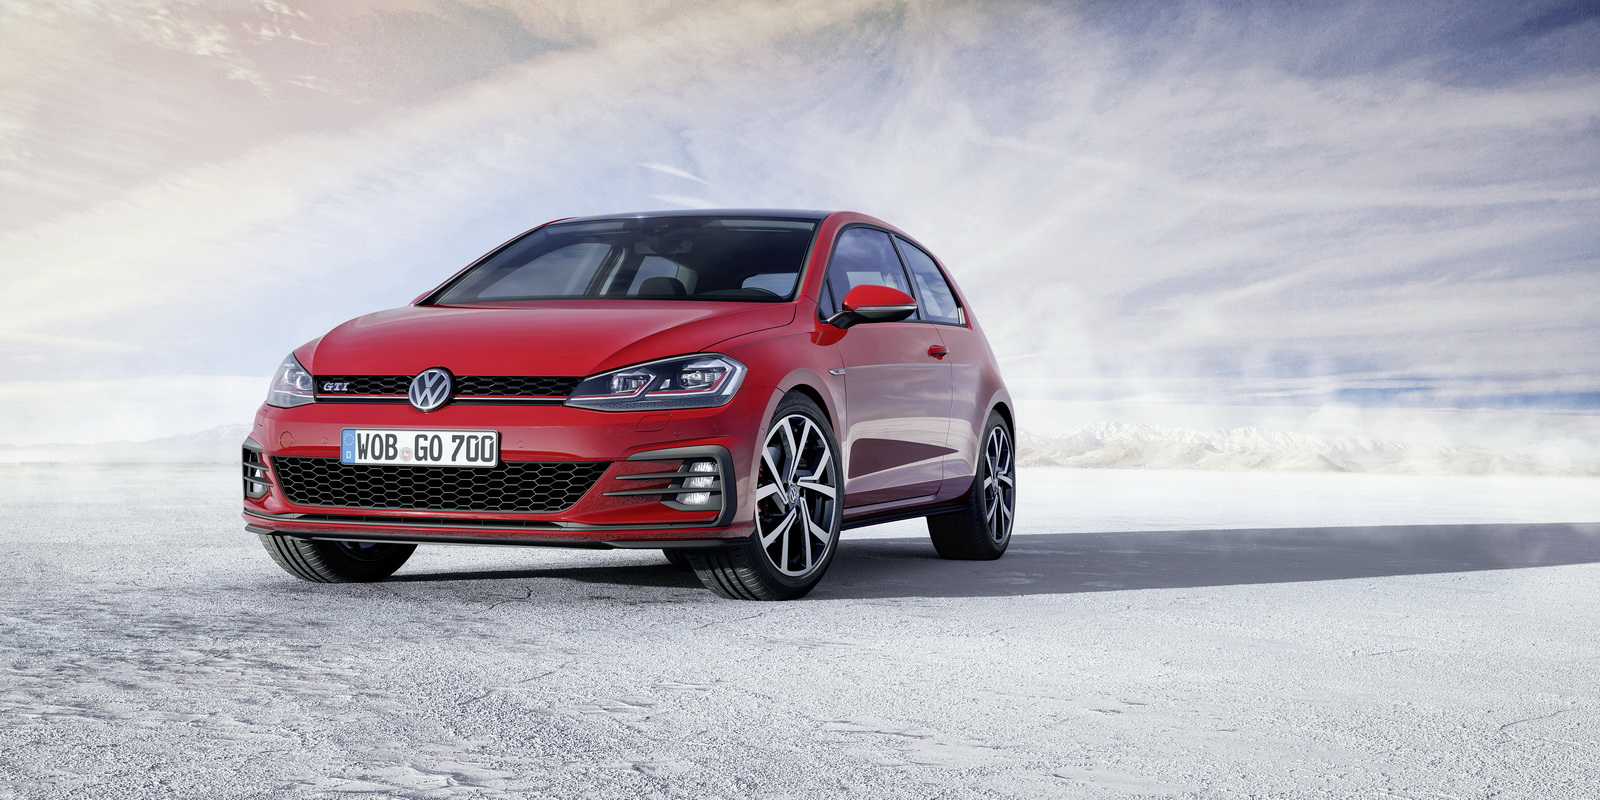 VW-Group-Hybrid-Hot-Hatches-4.jpg